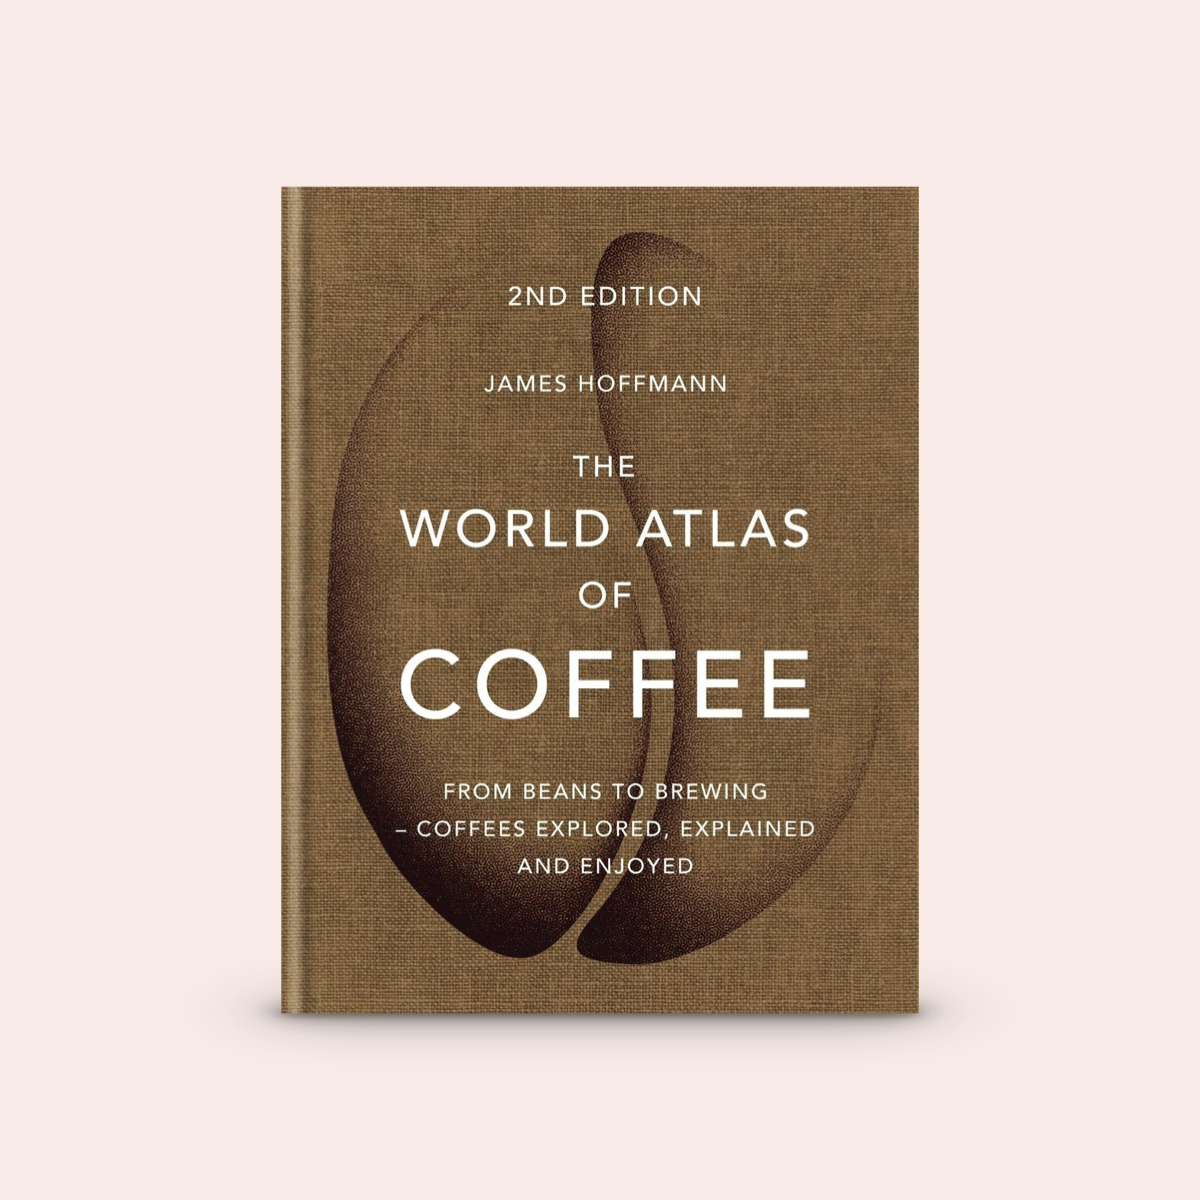 The World Atlas of Coffee: 2nd Edition